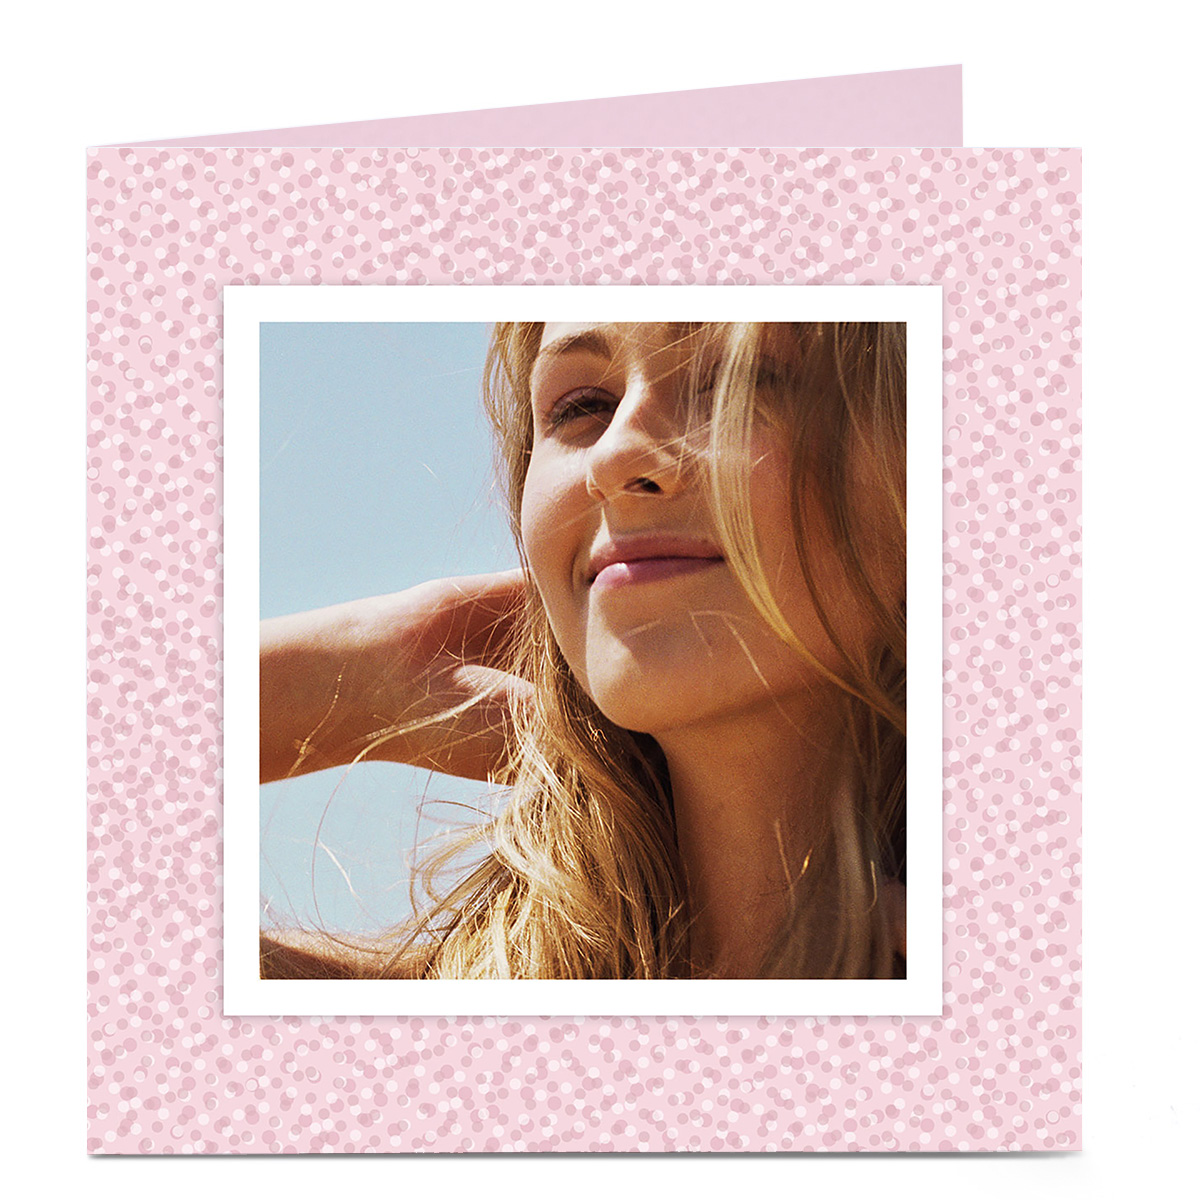 Photo Card - Pink & White Dots